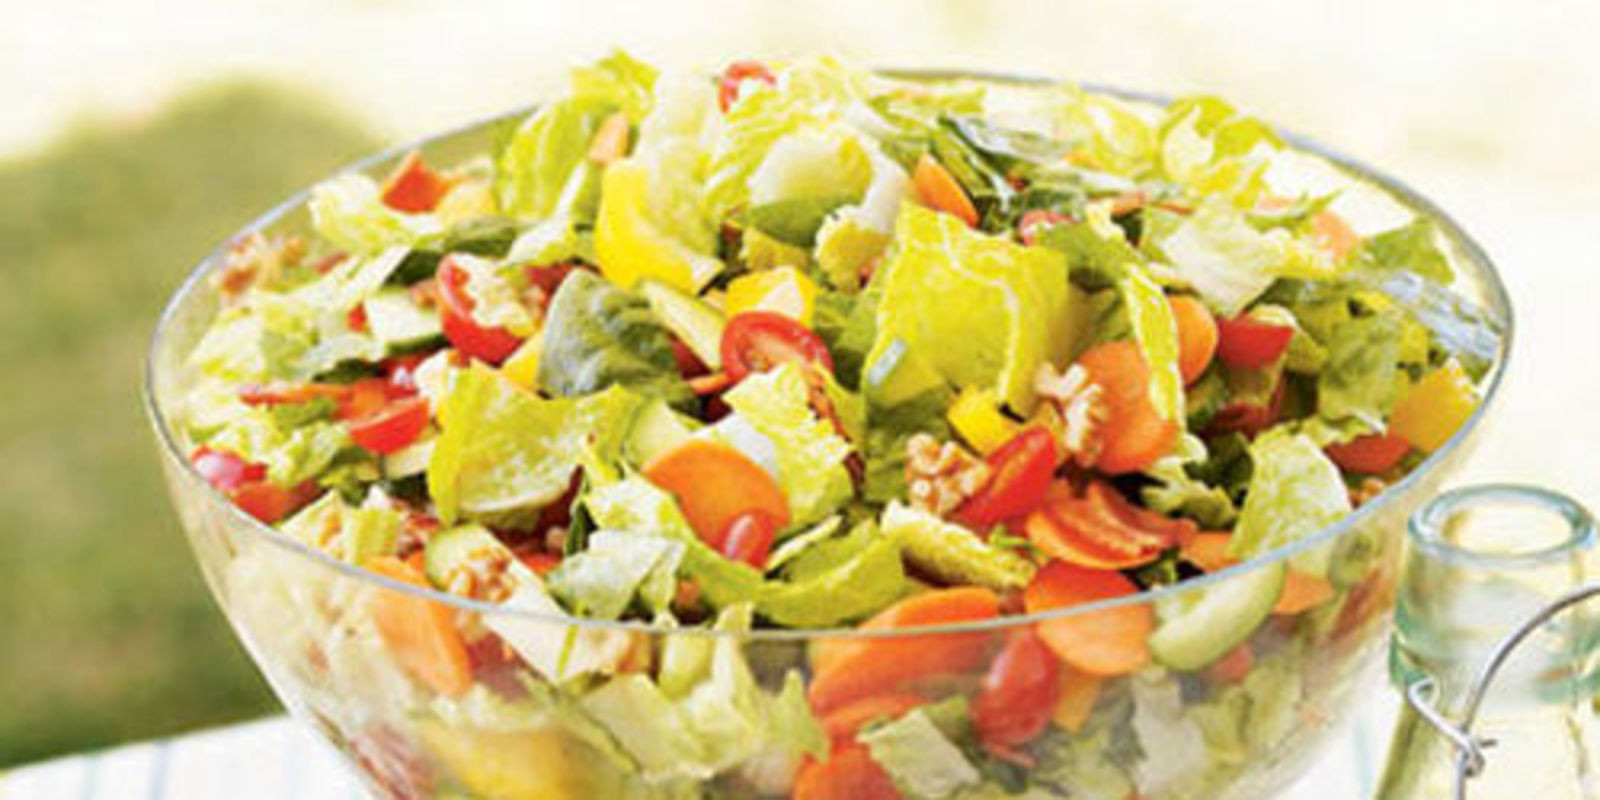 Summer Side Dishes  Summer Side Dishes Recipes Easy Recipes for Summer Sides